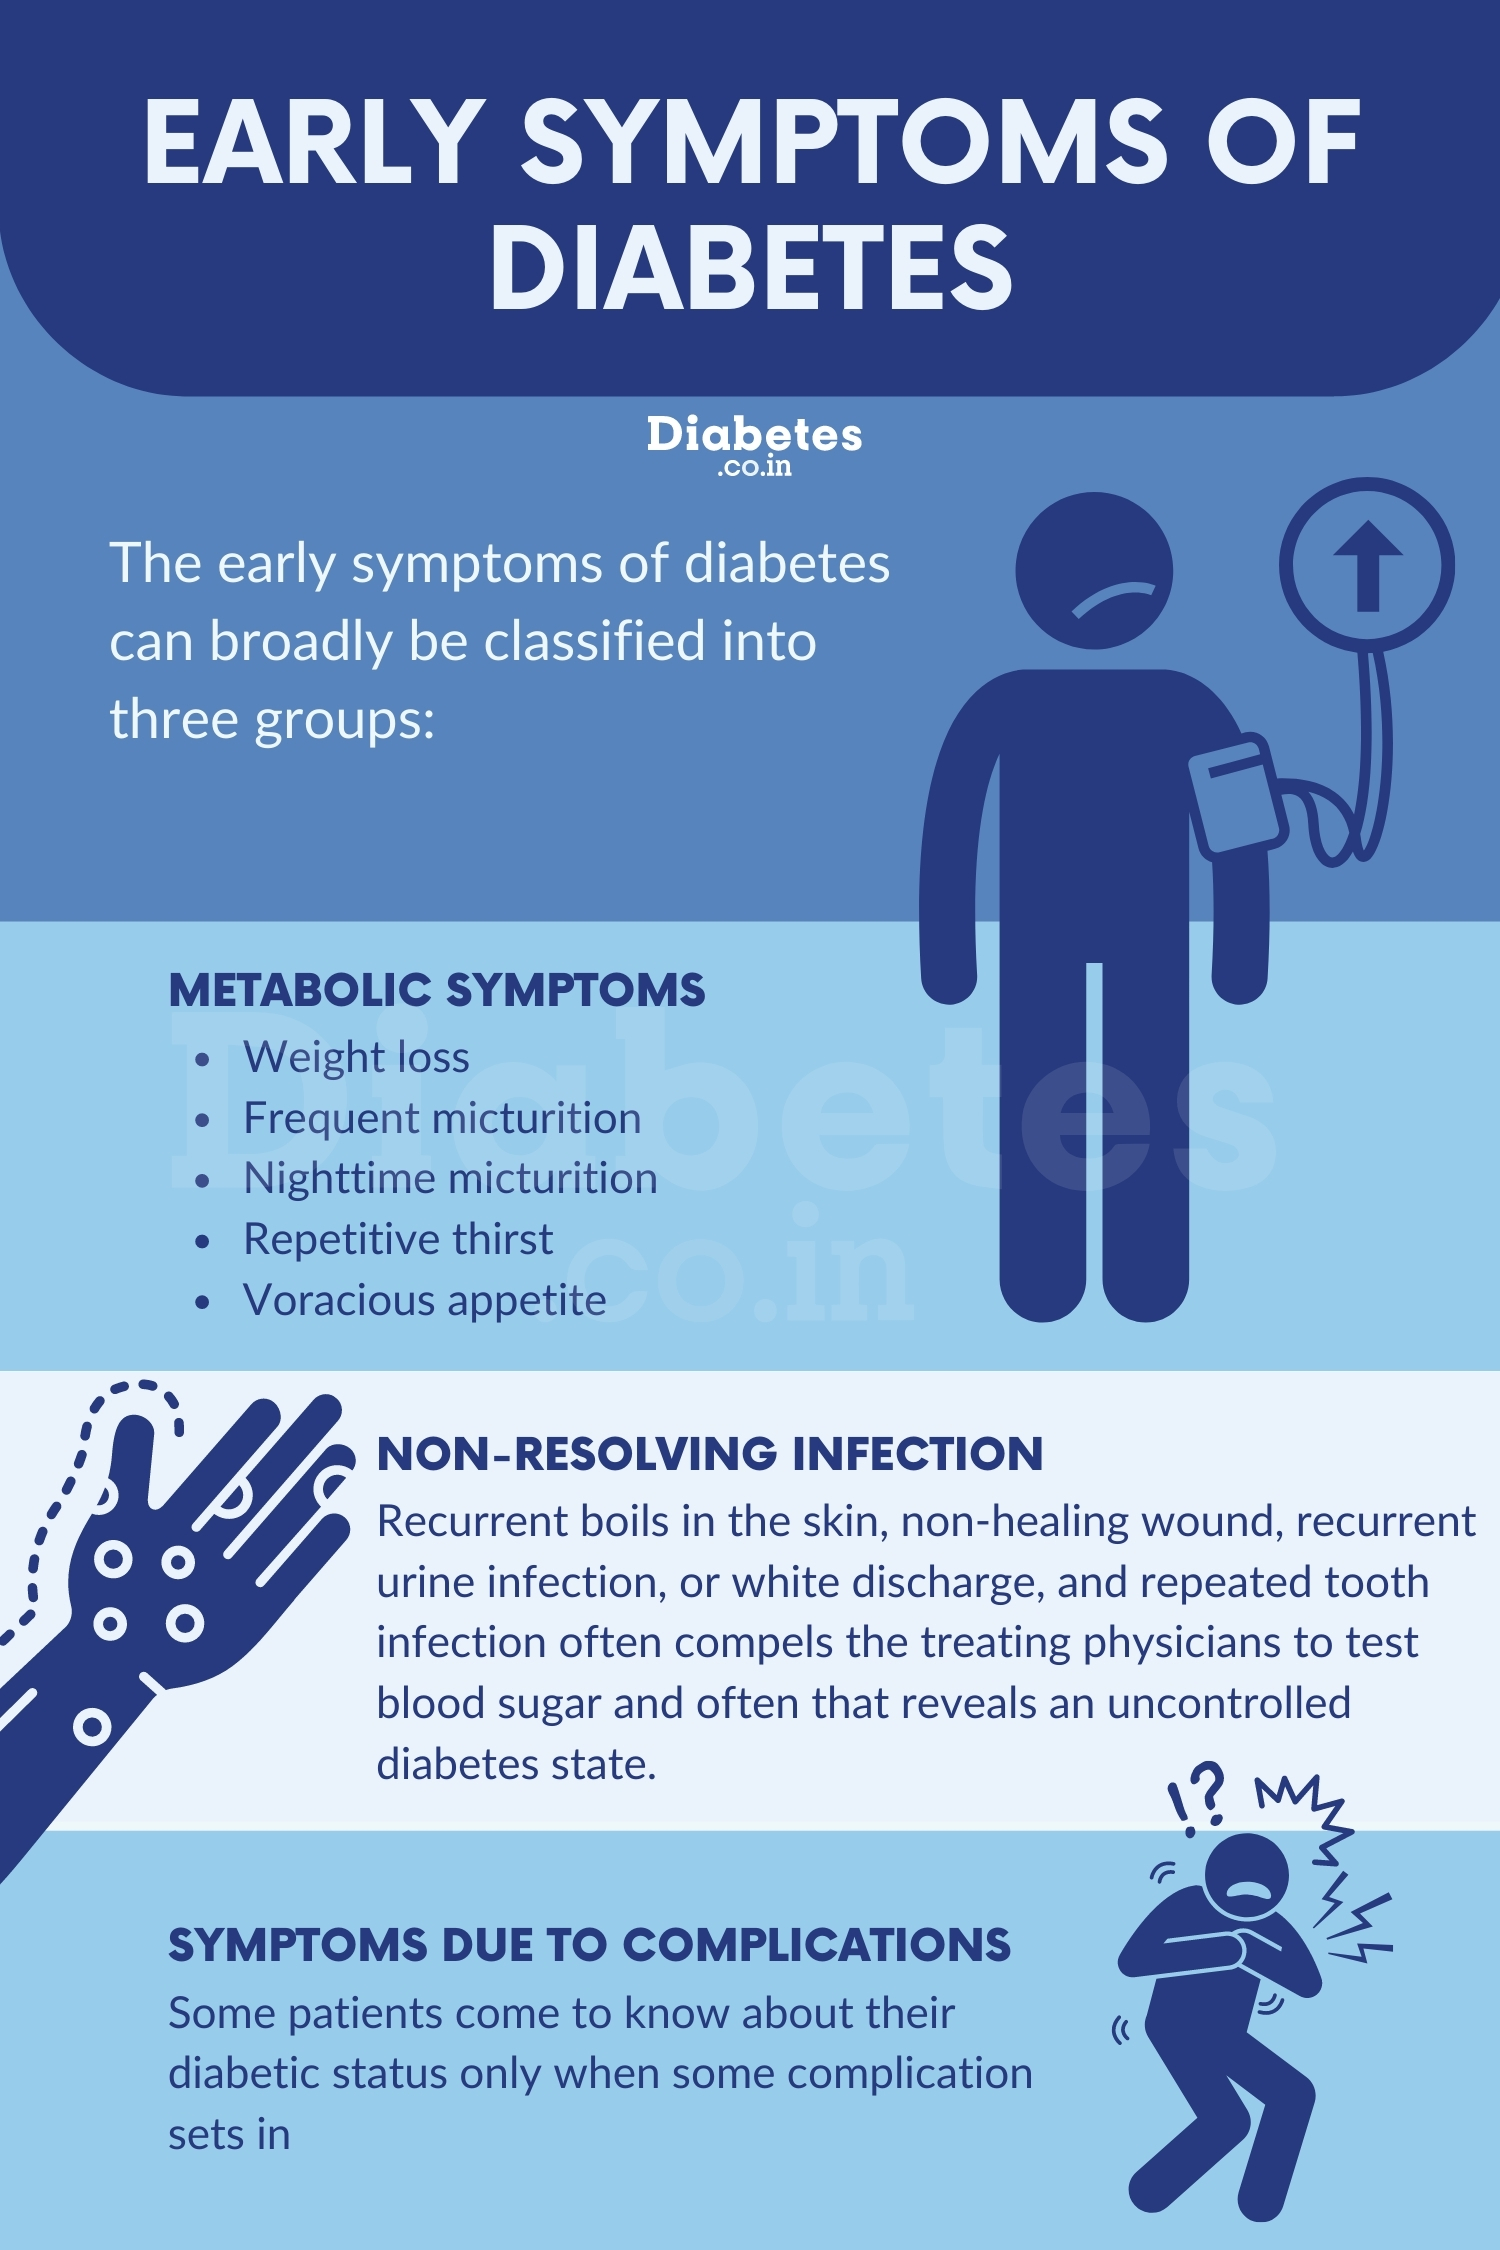 https://diabetes.co.in/media/uploads/2020/11/early-symptoms-of-diabetes.jpg